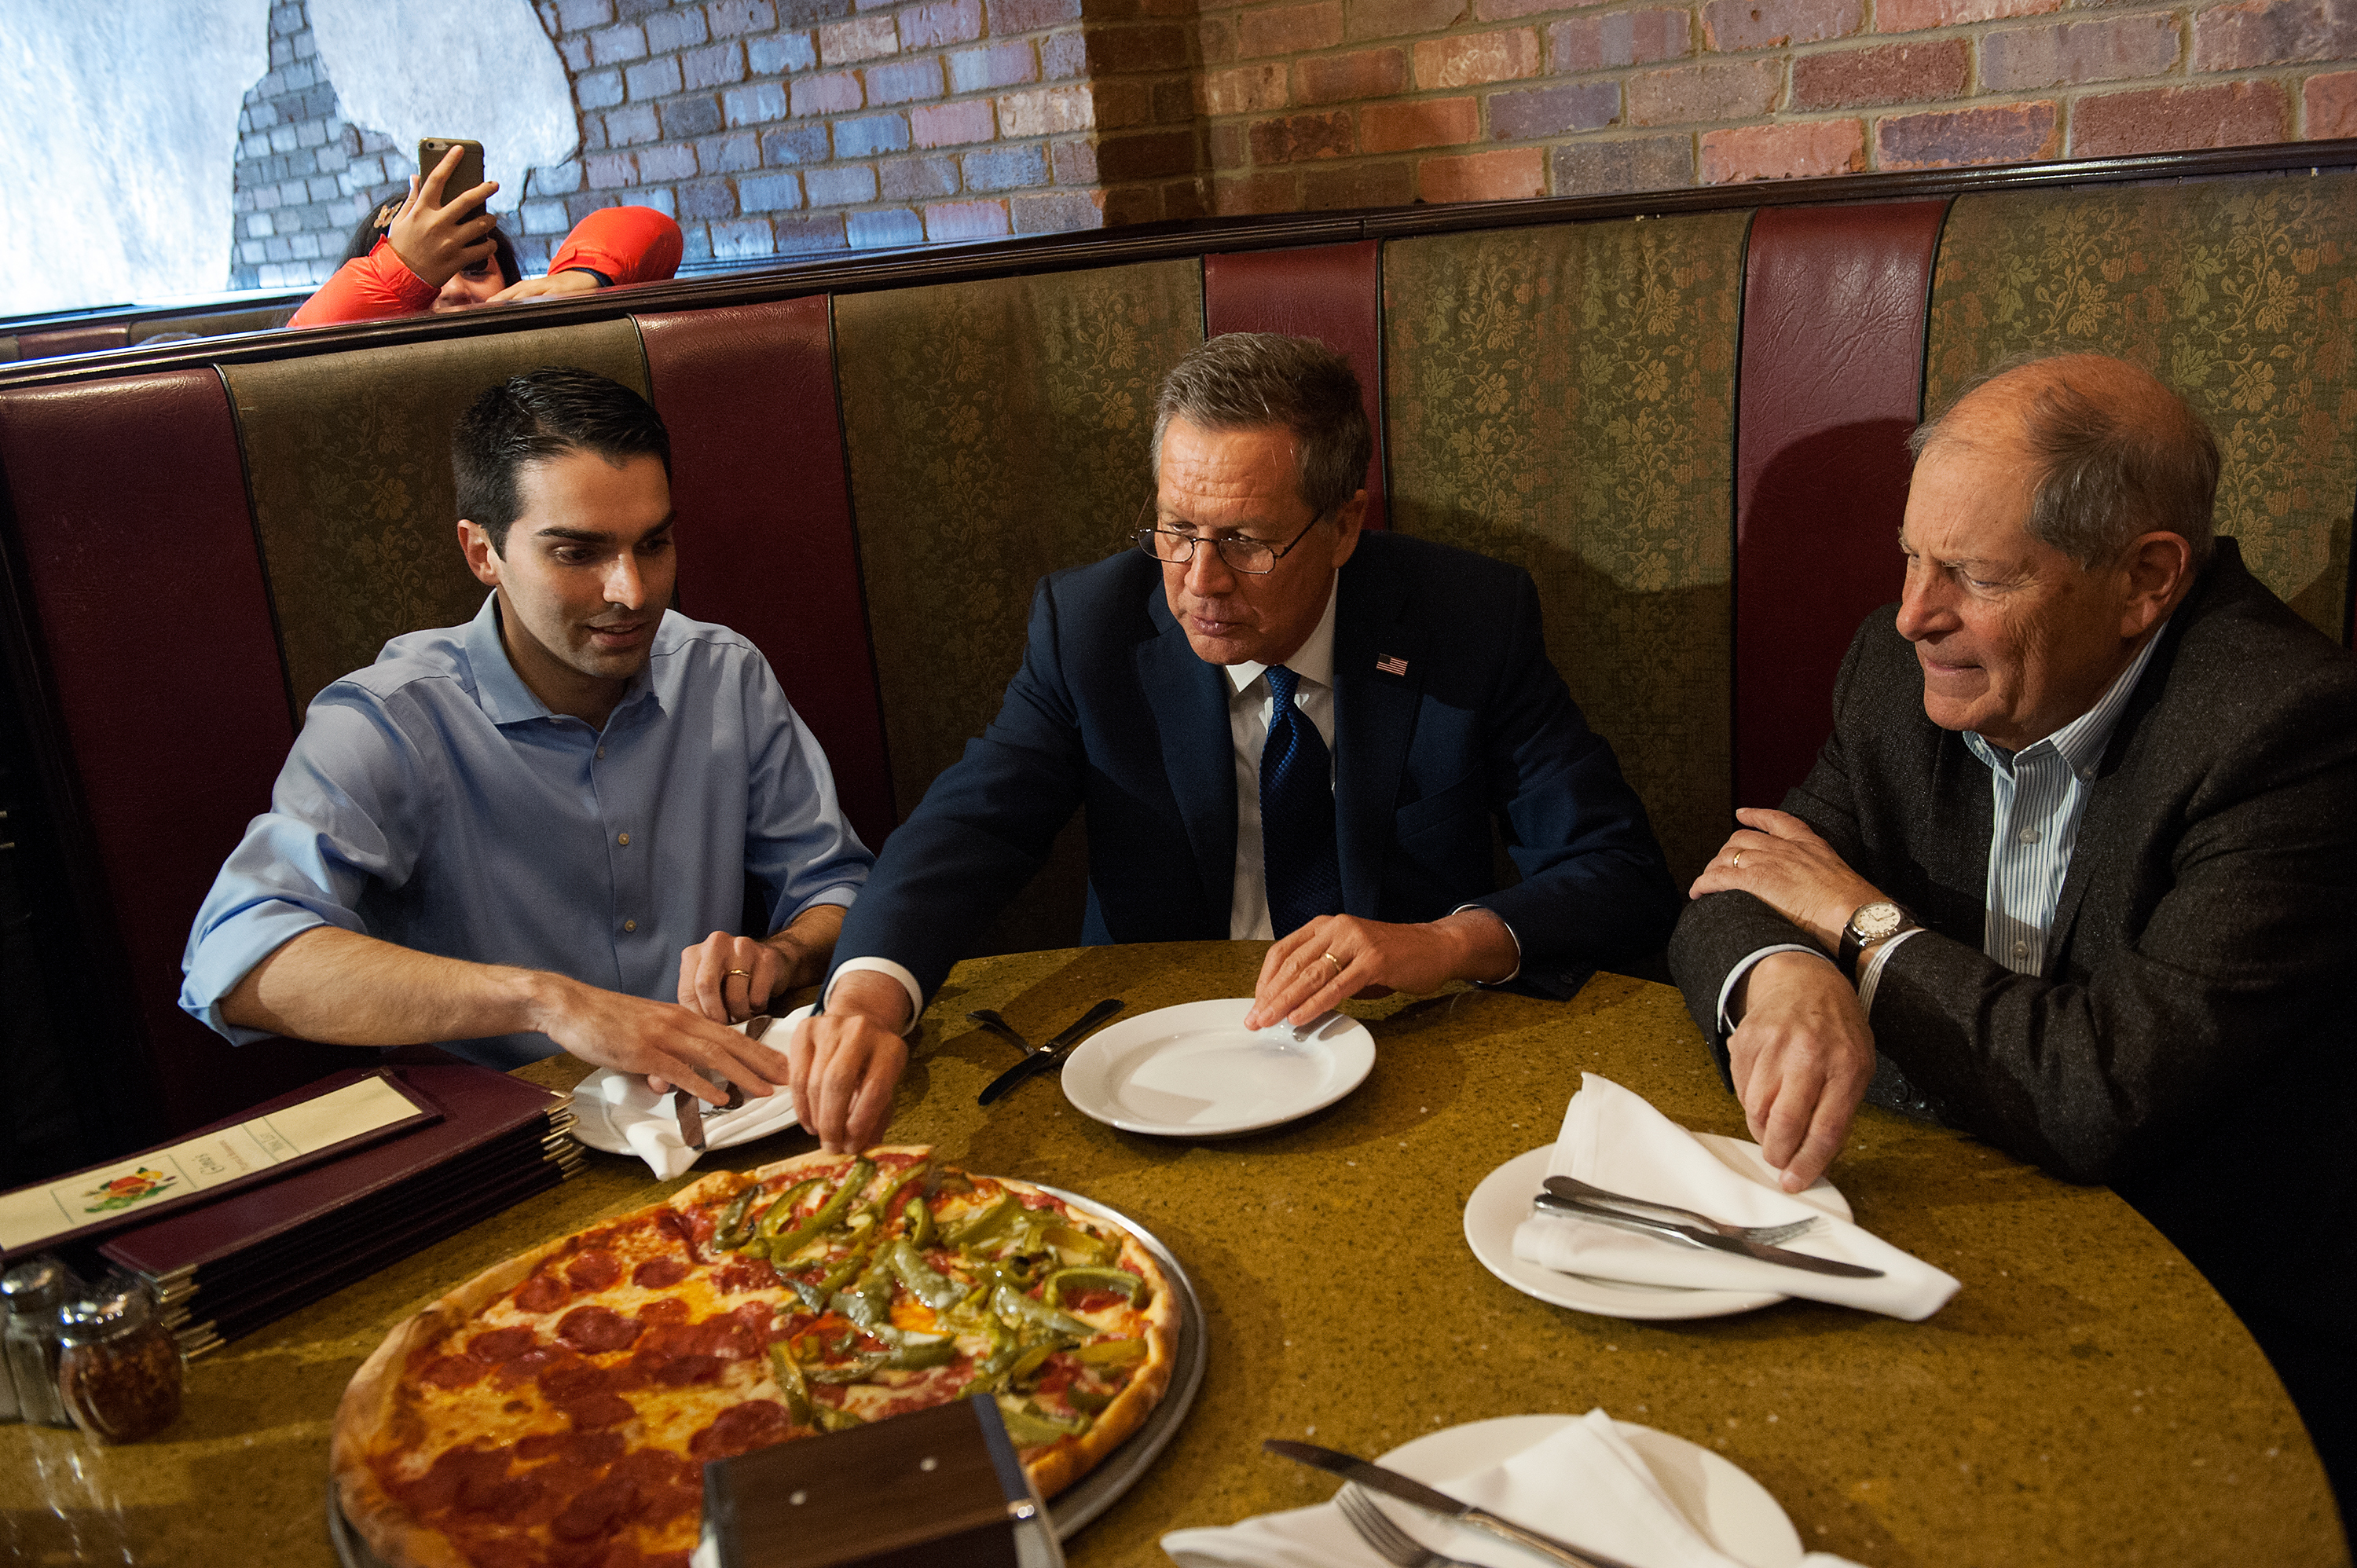 John Kasich and Bob Turner eat at Gino's Pizzeria and Restaurant in Queens, New York City on March 30, 2016.